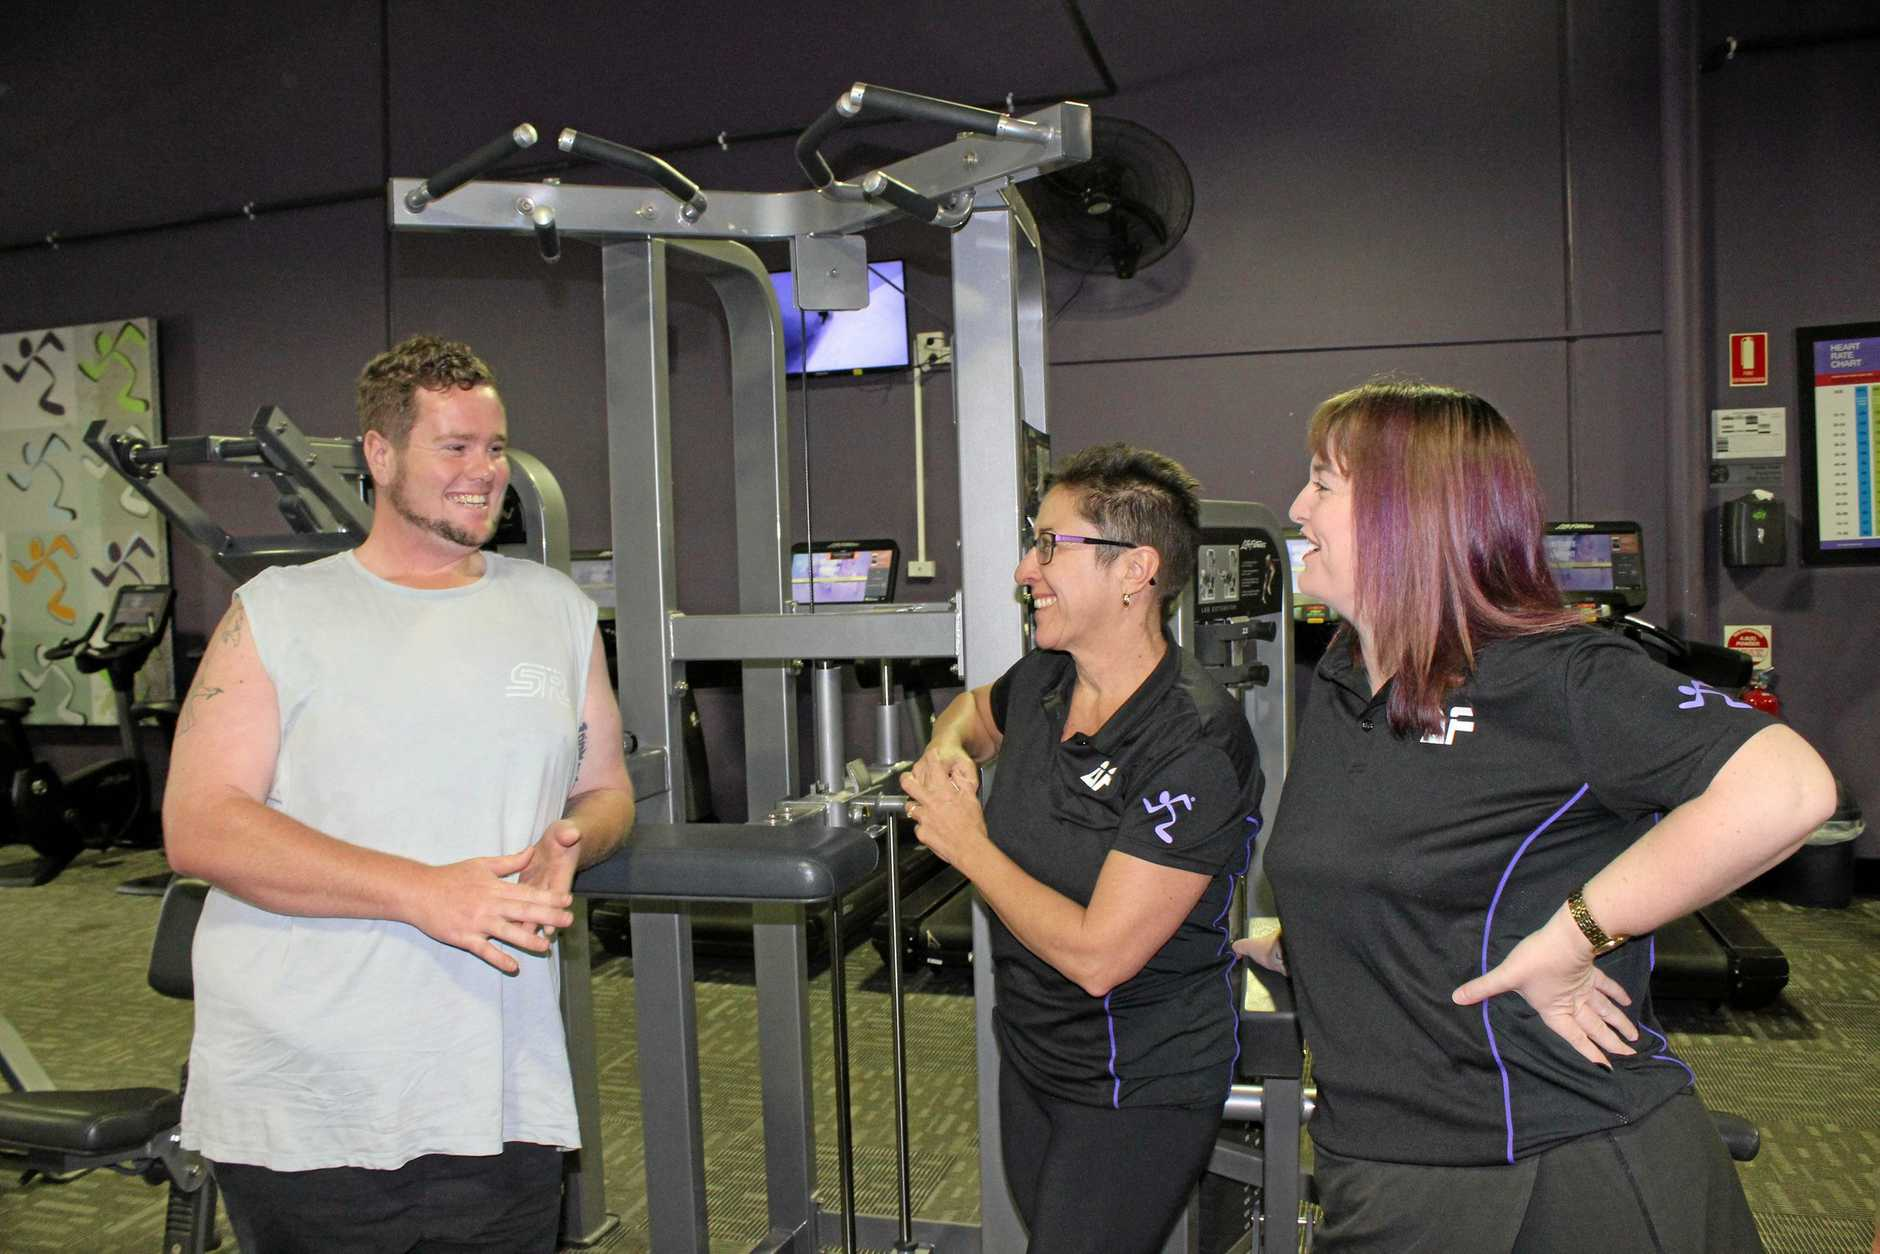 BIG CHANGES: Ben Blacksell has turned his life around with the help of Jenny Ryder and Kathryn Langford and Anytime Fitness.